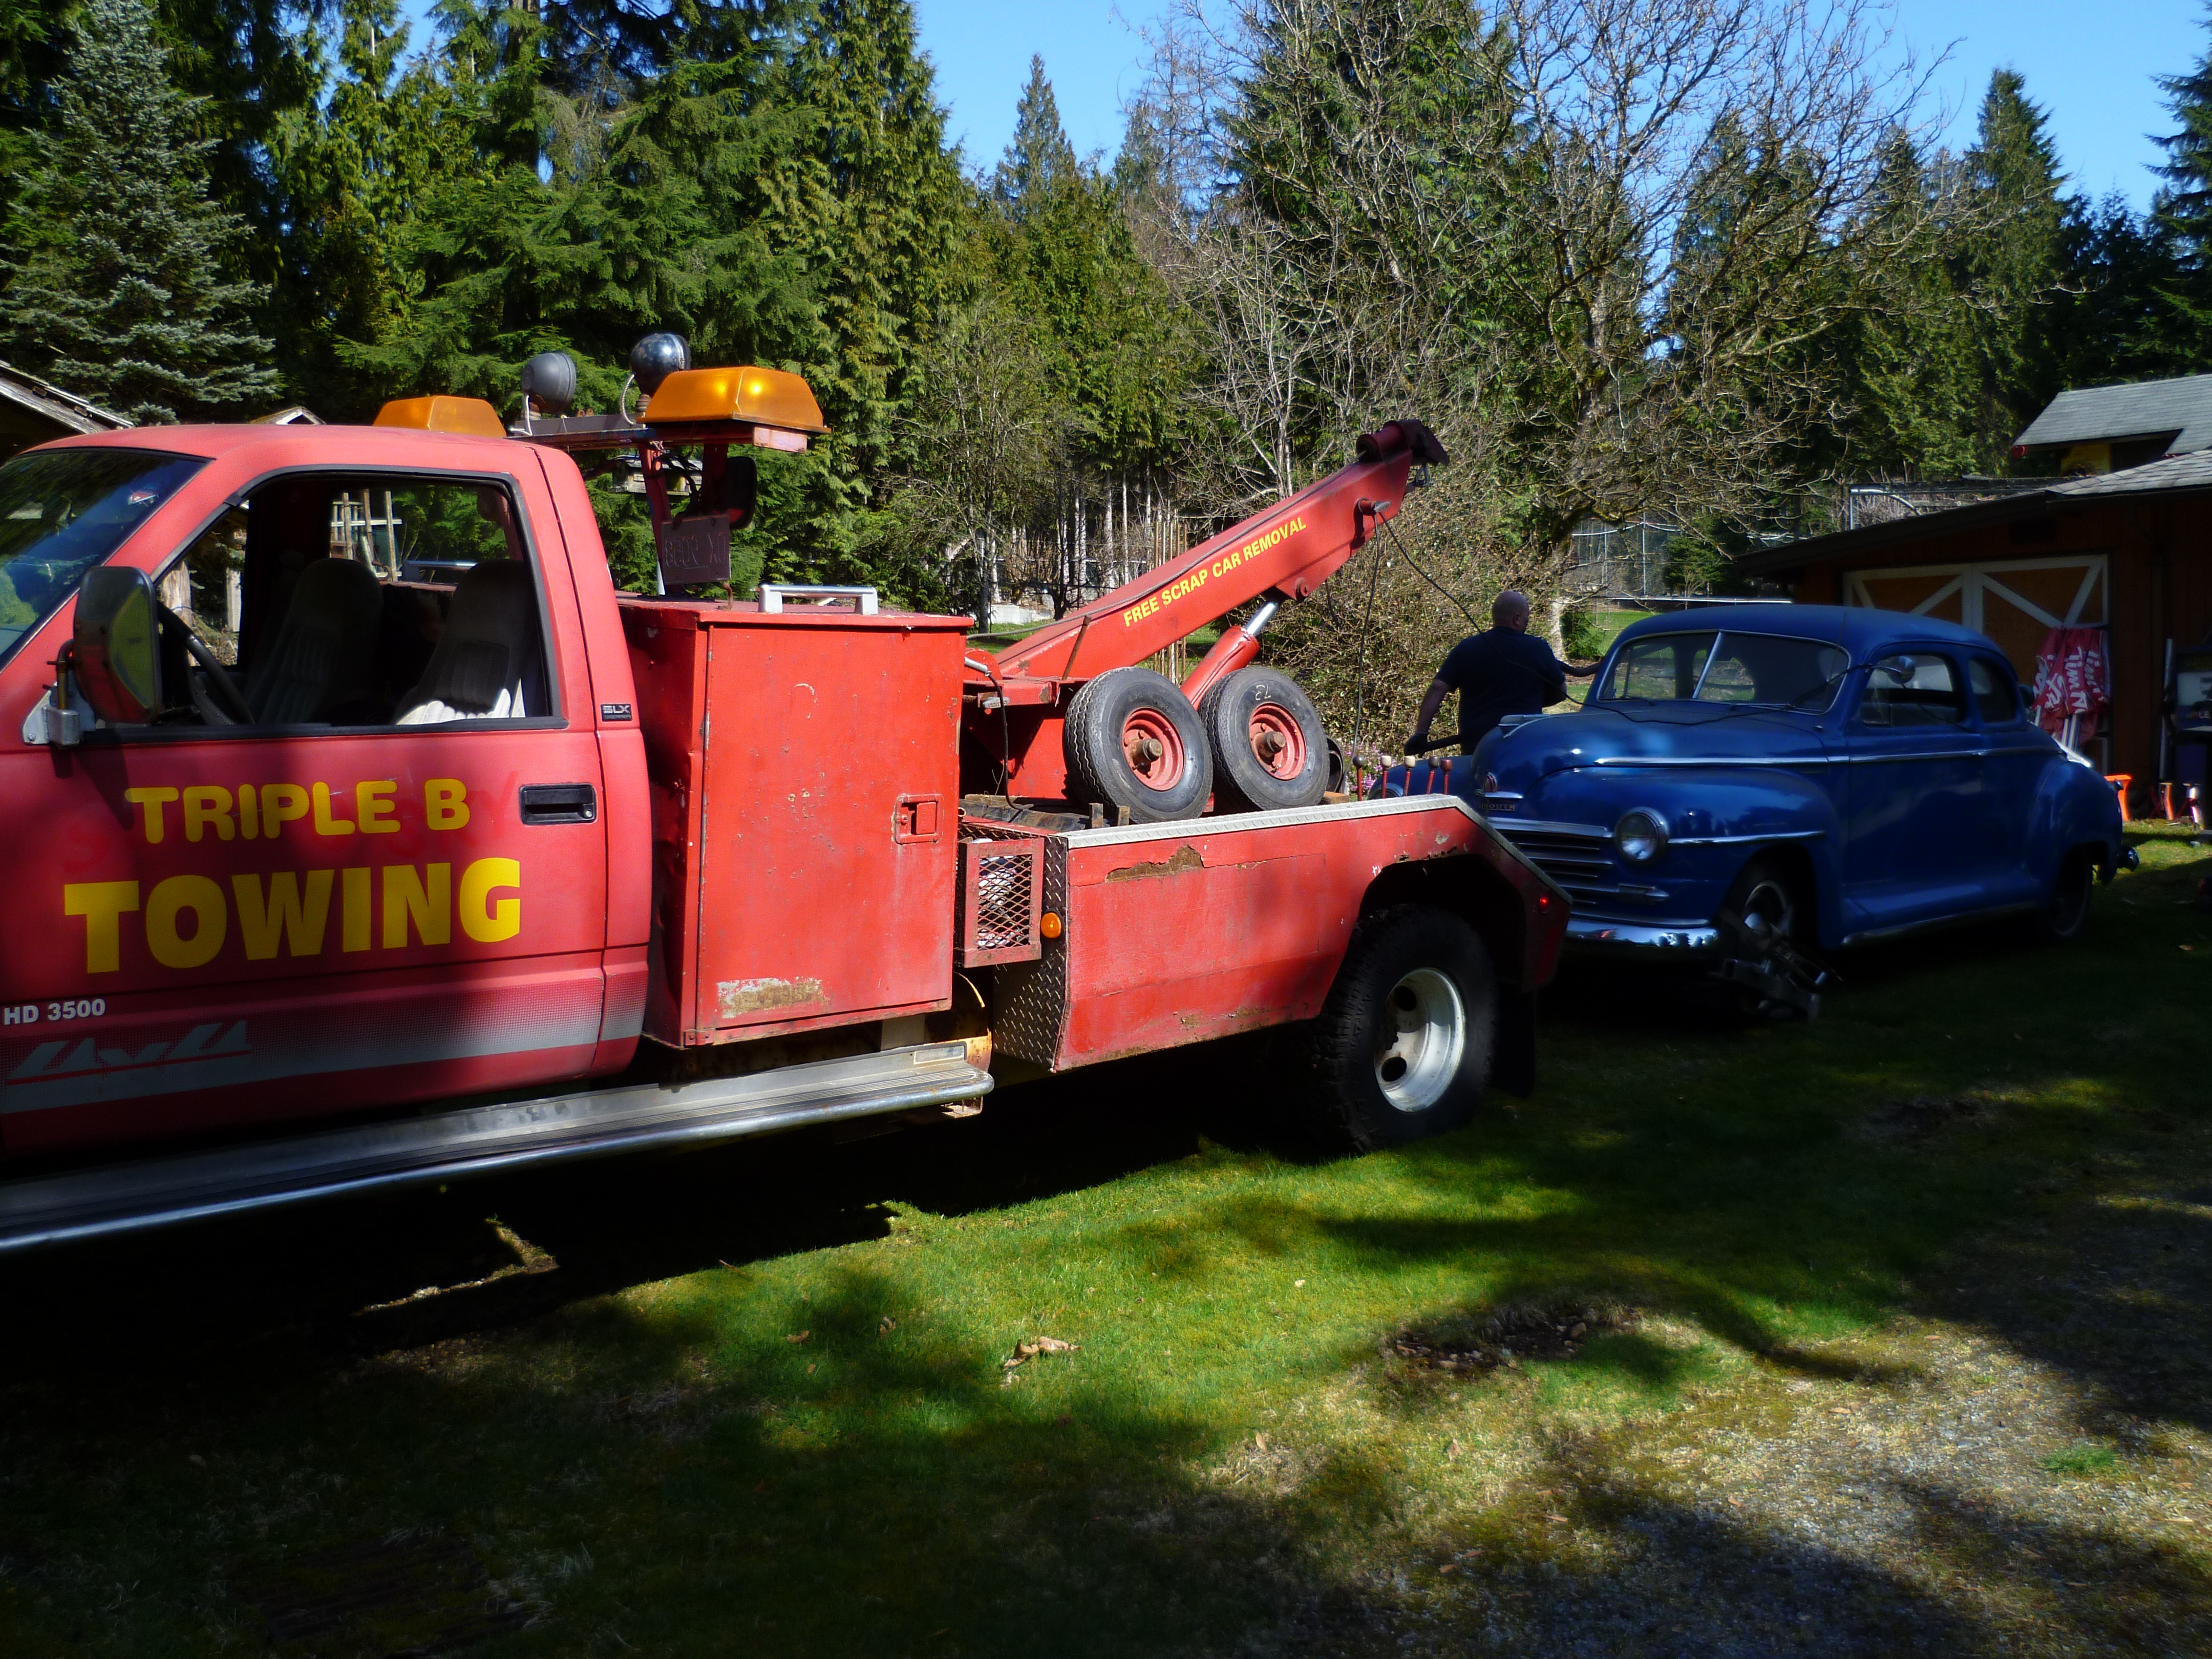 Towing Quote Our Work  Port Coquitlam Towing & Scrap Car Removal  Triple B Towing